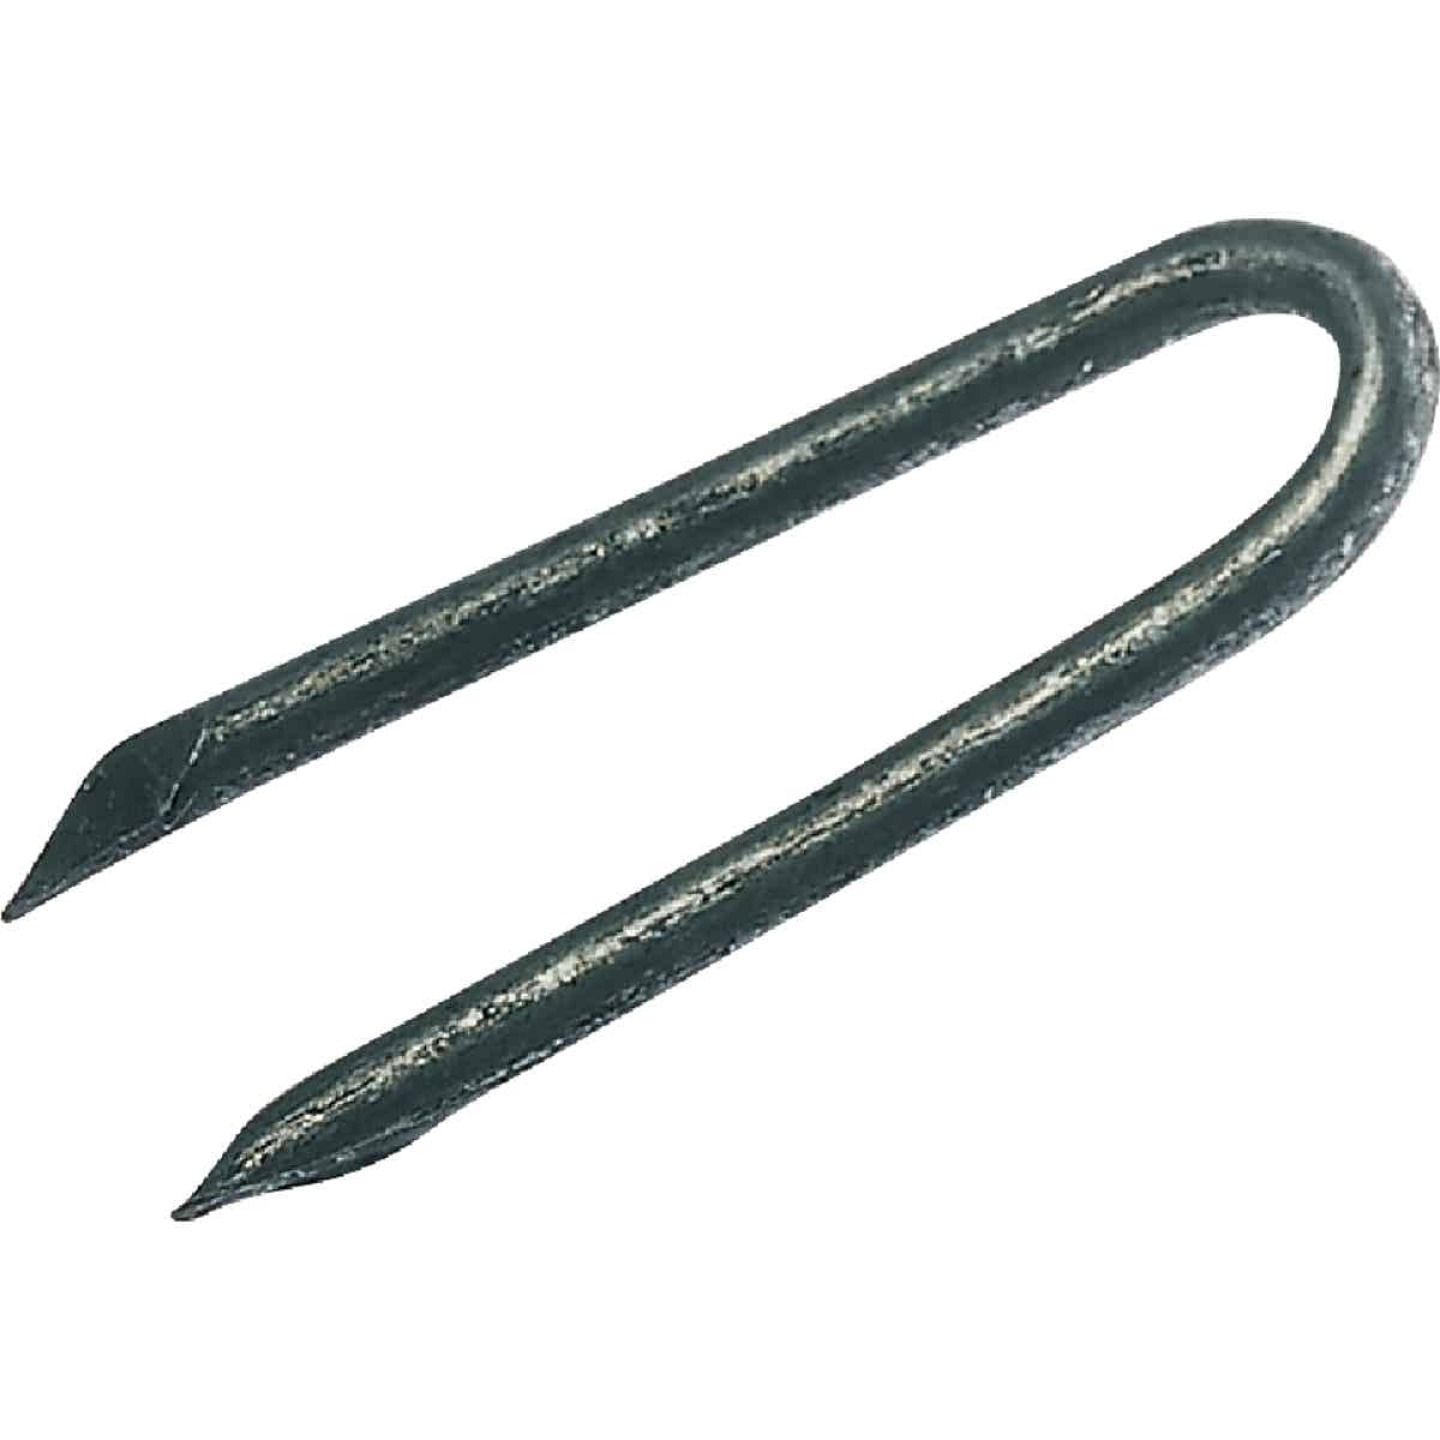 Grip-Rite 1 In. 9 ga Hot Galvanized Fence Staple (5300 Ct., 50 Lb.) Image 1